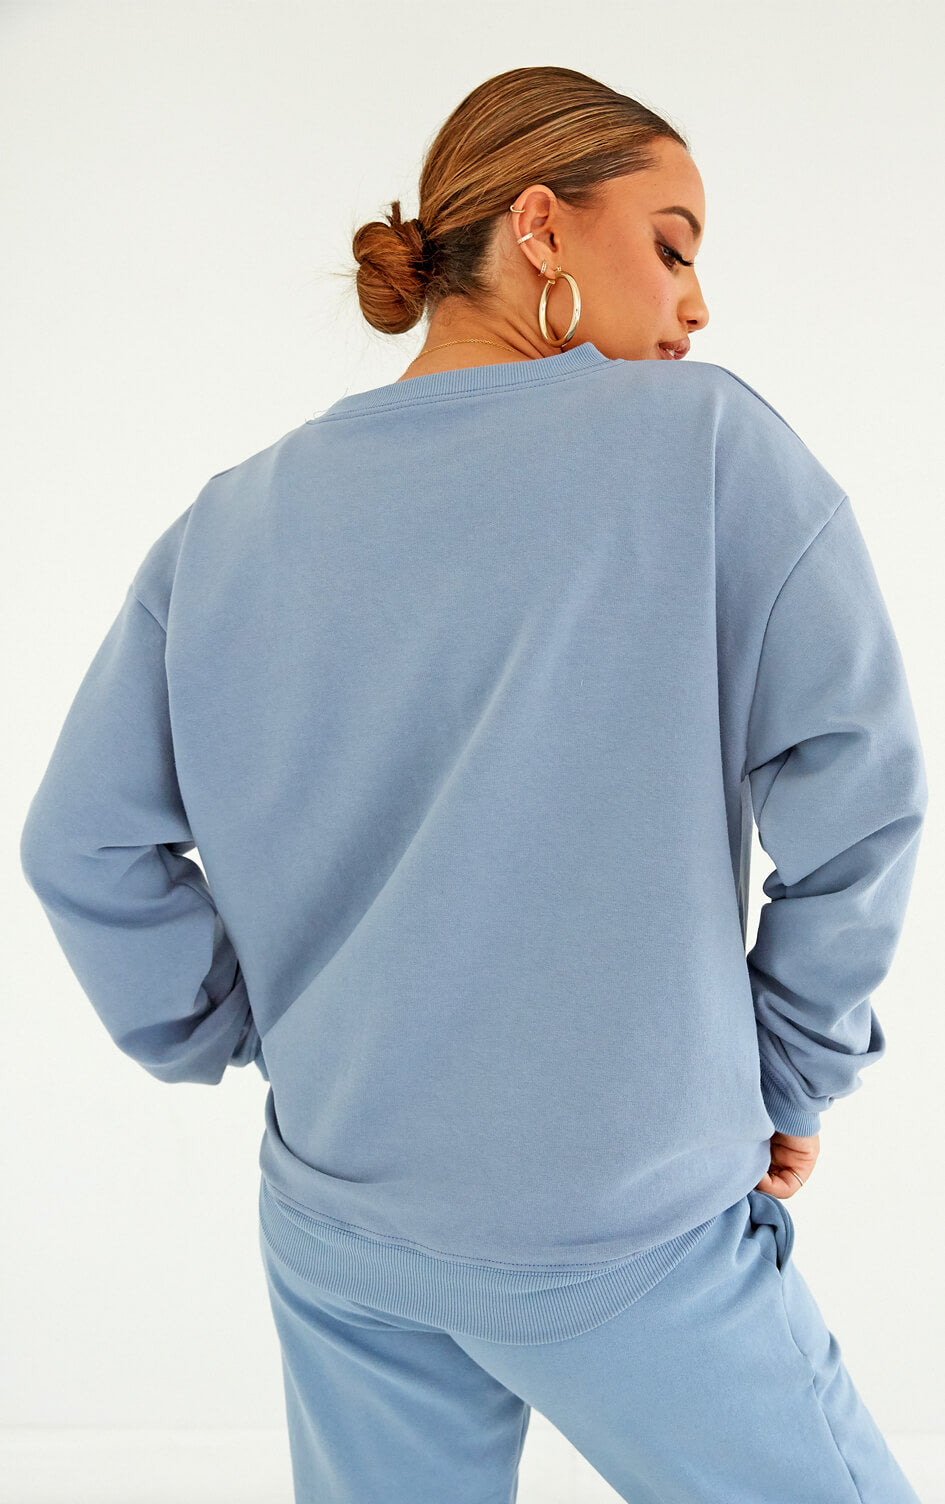 shop-dana-scott-fall-collection-denim-blue-cotton-fleece-crewneck-sweatshirt-matching-set